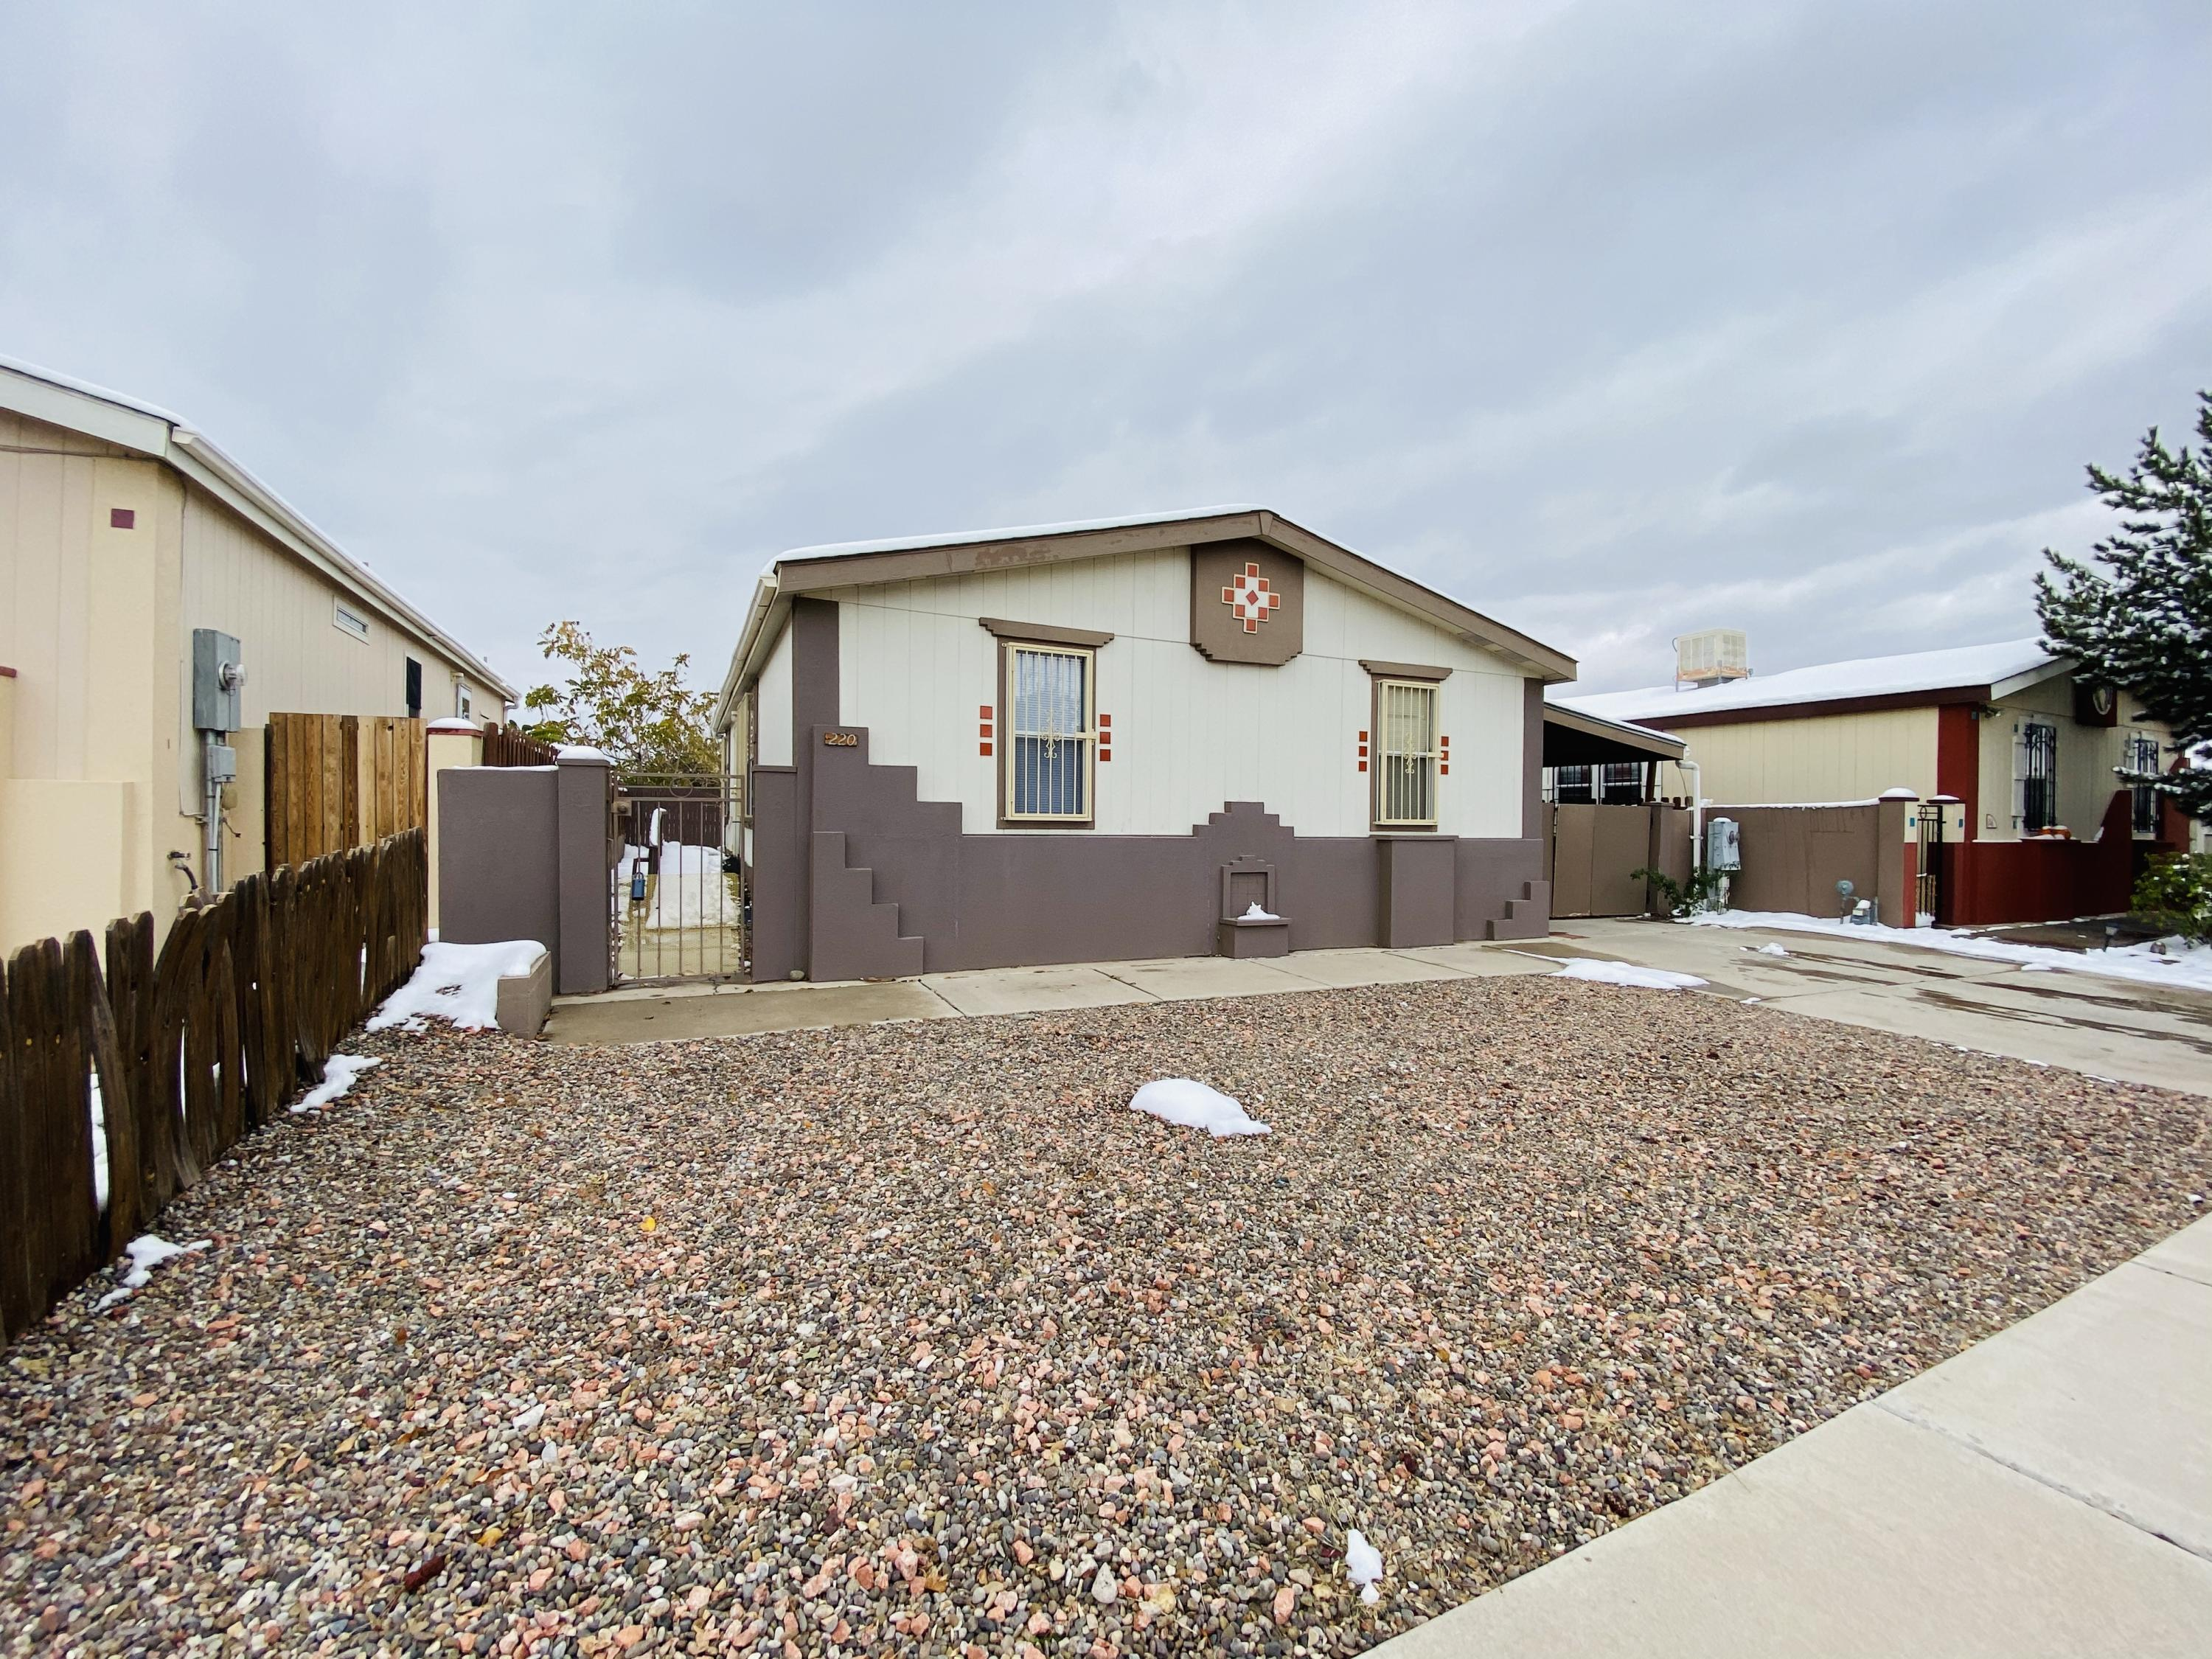 Must see, this home is move in ready, well maintained, affordable and conveniently located. Offering an open floor plan, large closets, lots of cabinets and counter space in the kitchen Private, low maintenance yard and a carport makes this a perfect place to call home.